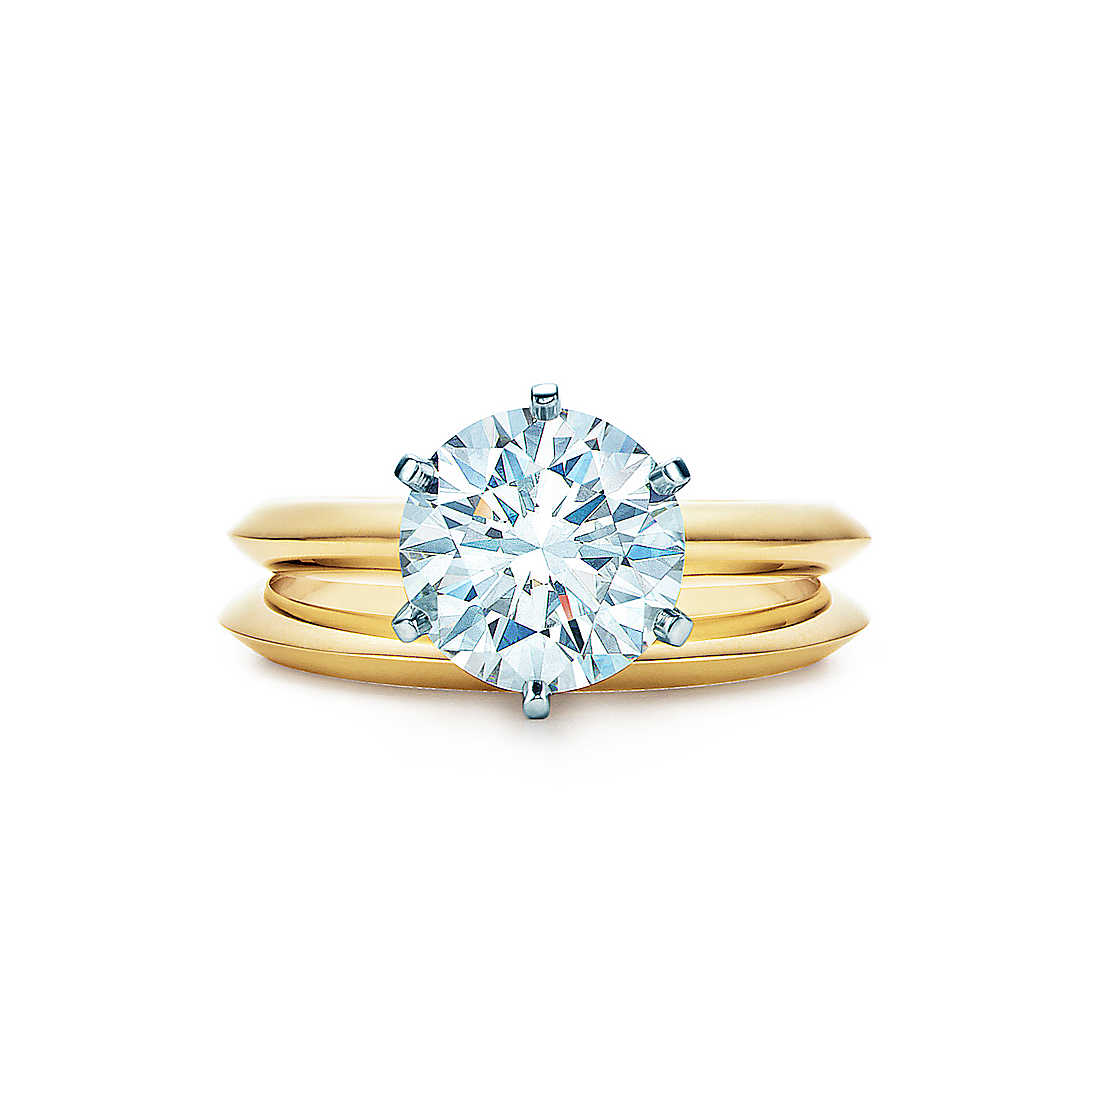 Tiffany Cut Engagement Rings- Gold Jewelry (4)